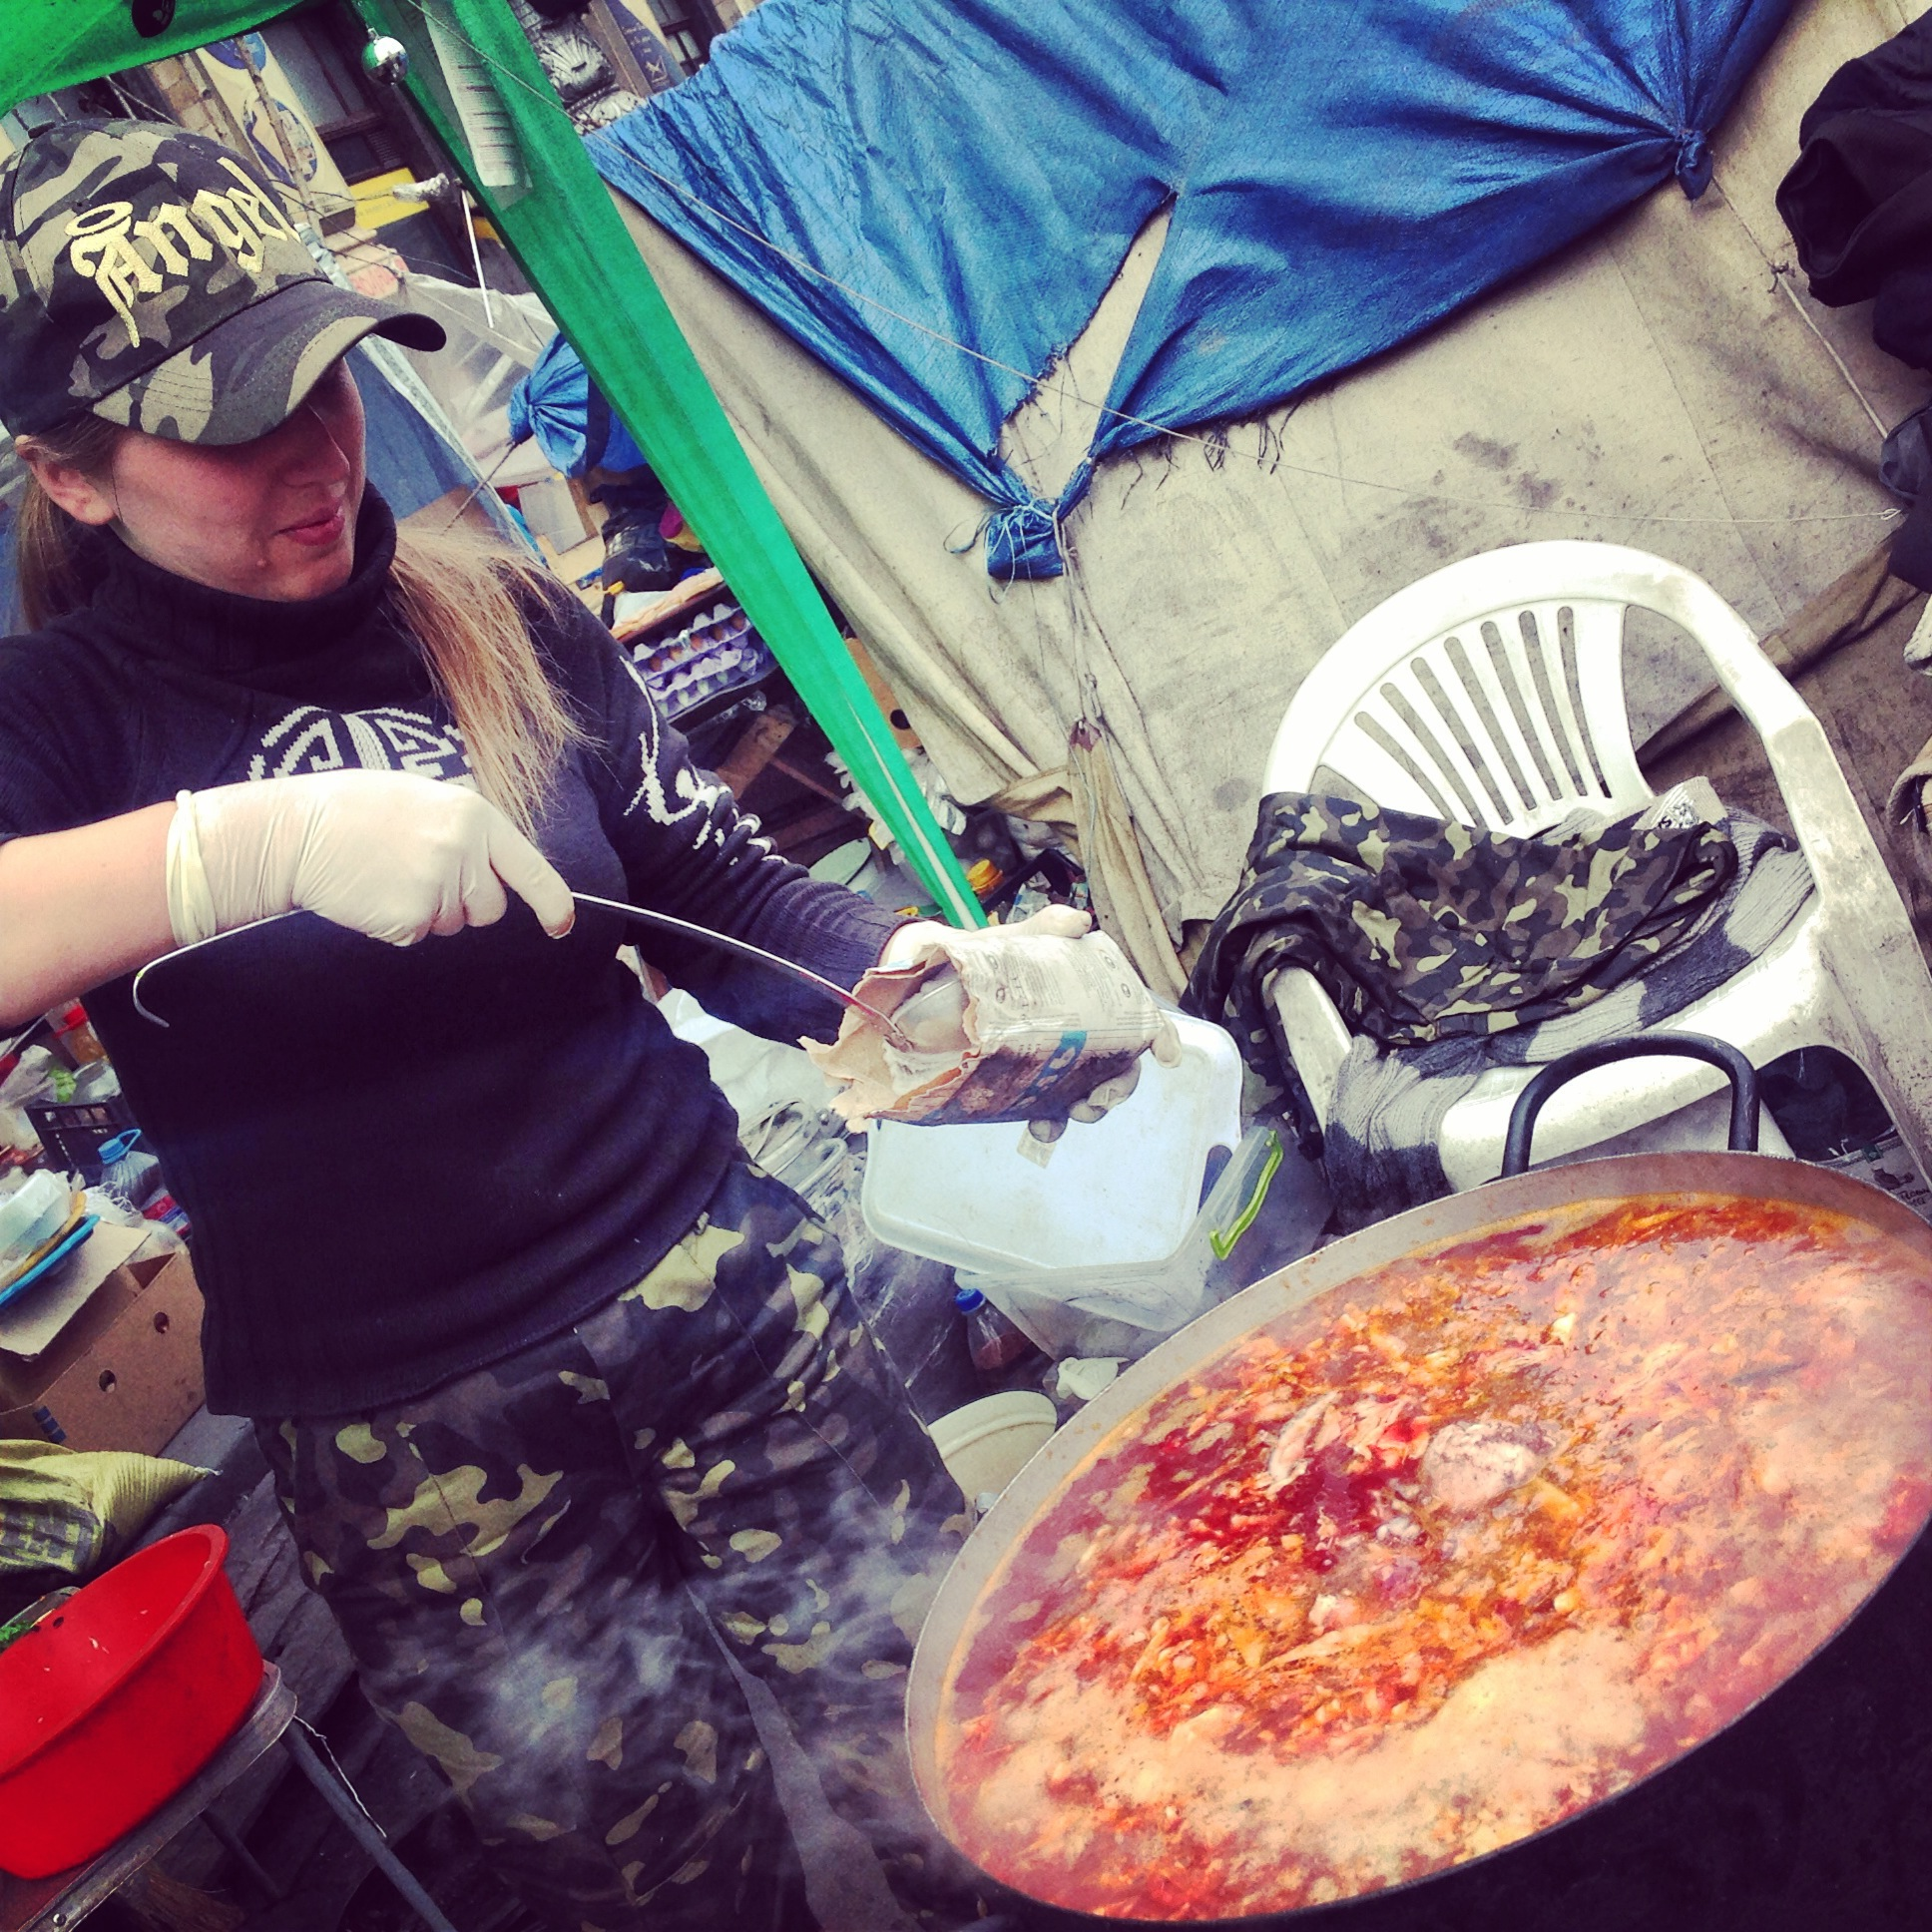 A volunteer makes borscht on the Maidan in 2014. Some are wondering whether discontent over the slow pace of reform might fuel a third Maidan. Photo: M. Bociurkiw